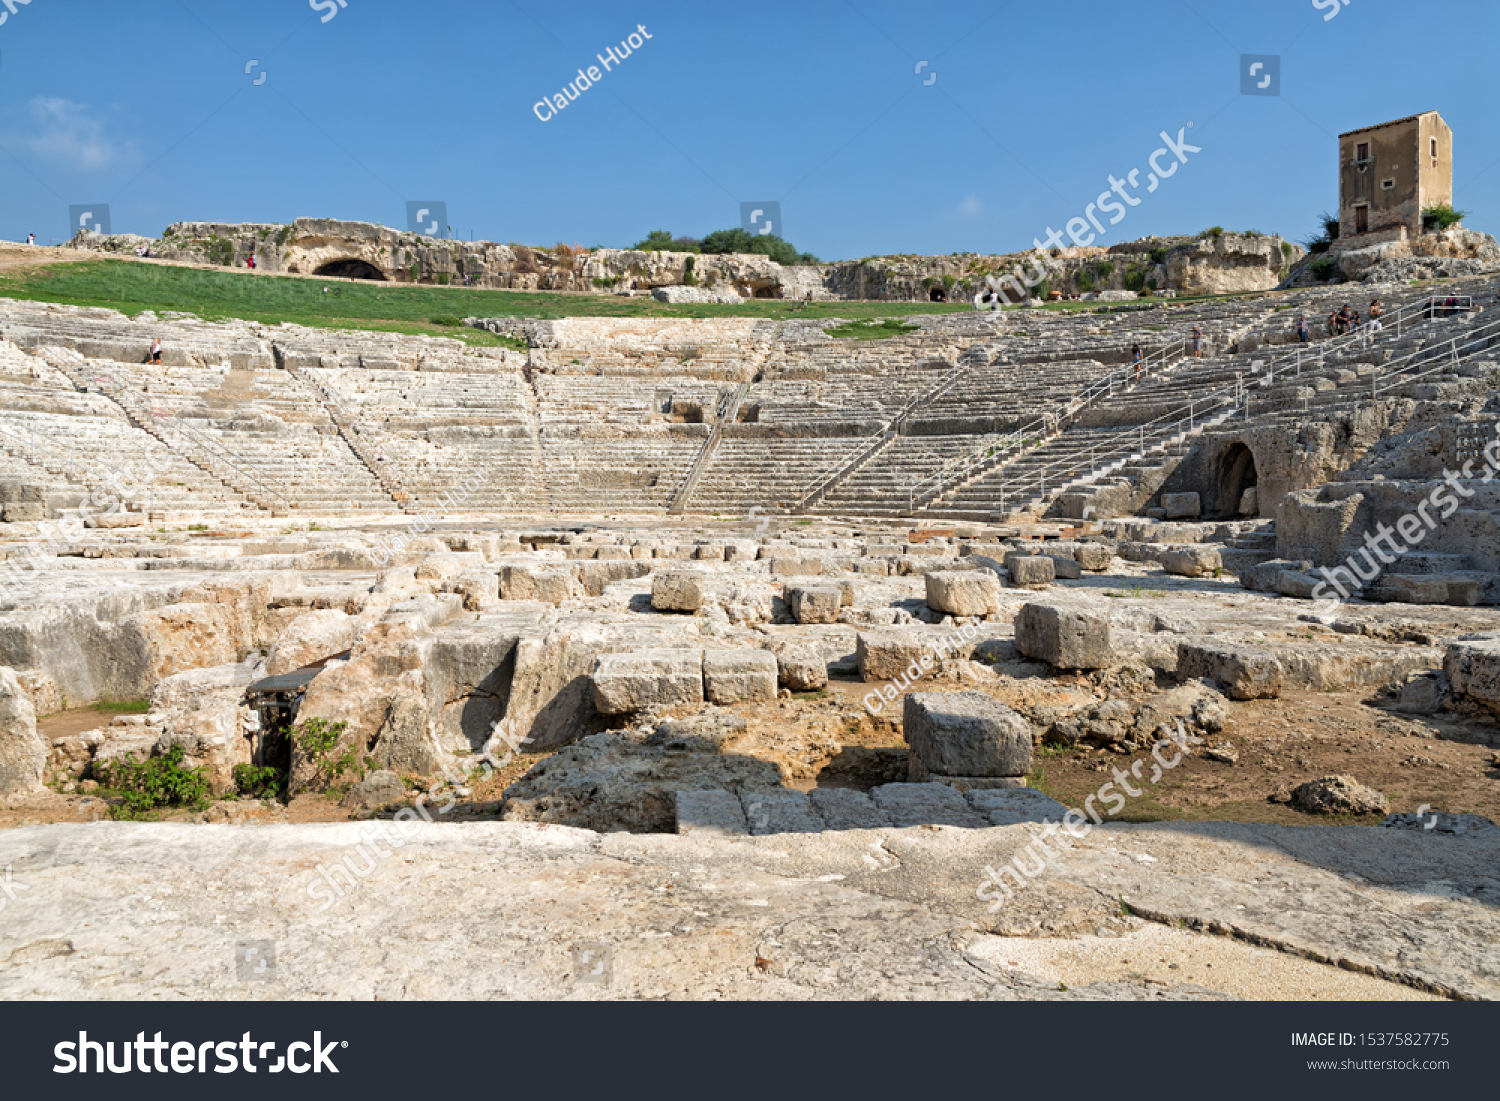 SYRACUSE, SICILY, ITALY - SEPTEMBER 19,2019: The Greek theater of Syracuse on the slopes of the Temenite hill in Sicily, Italy. It was built in the 5th century BC and rebuilt in the 3rd century BC.